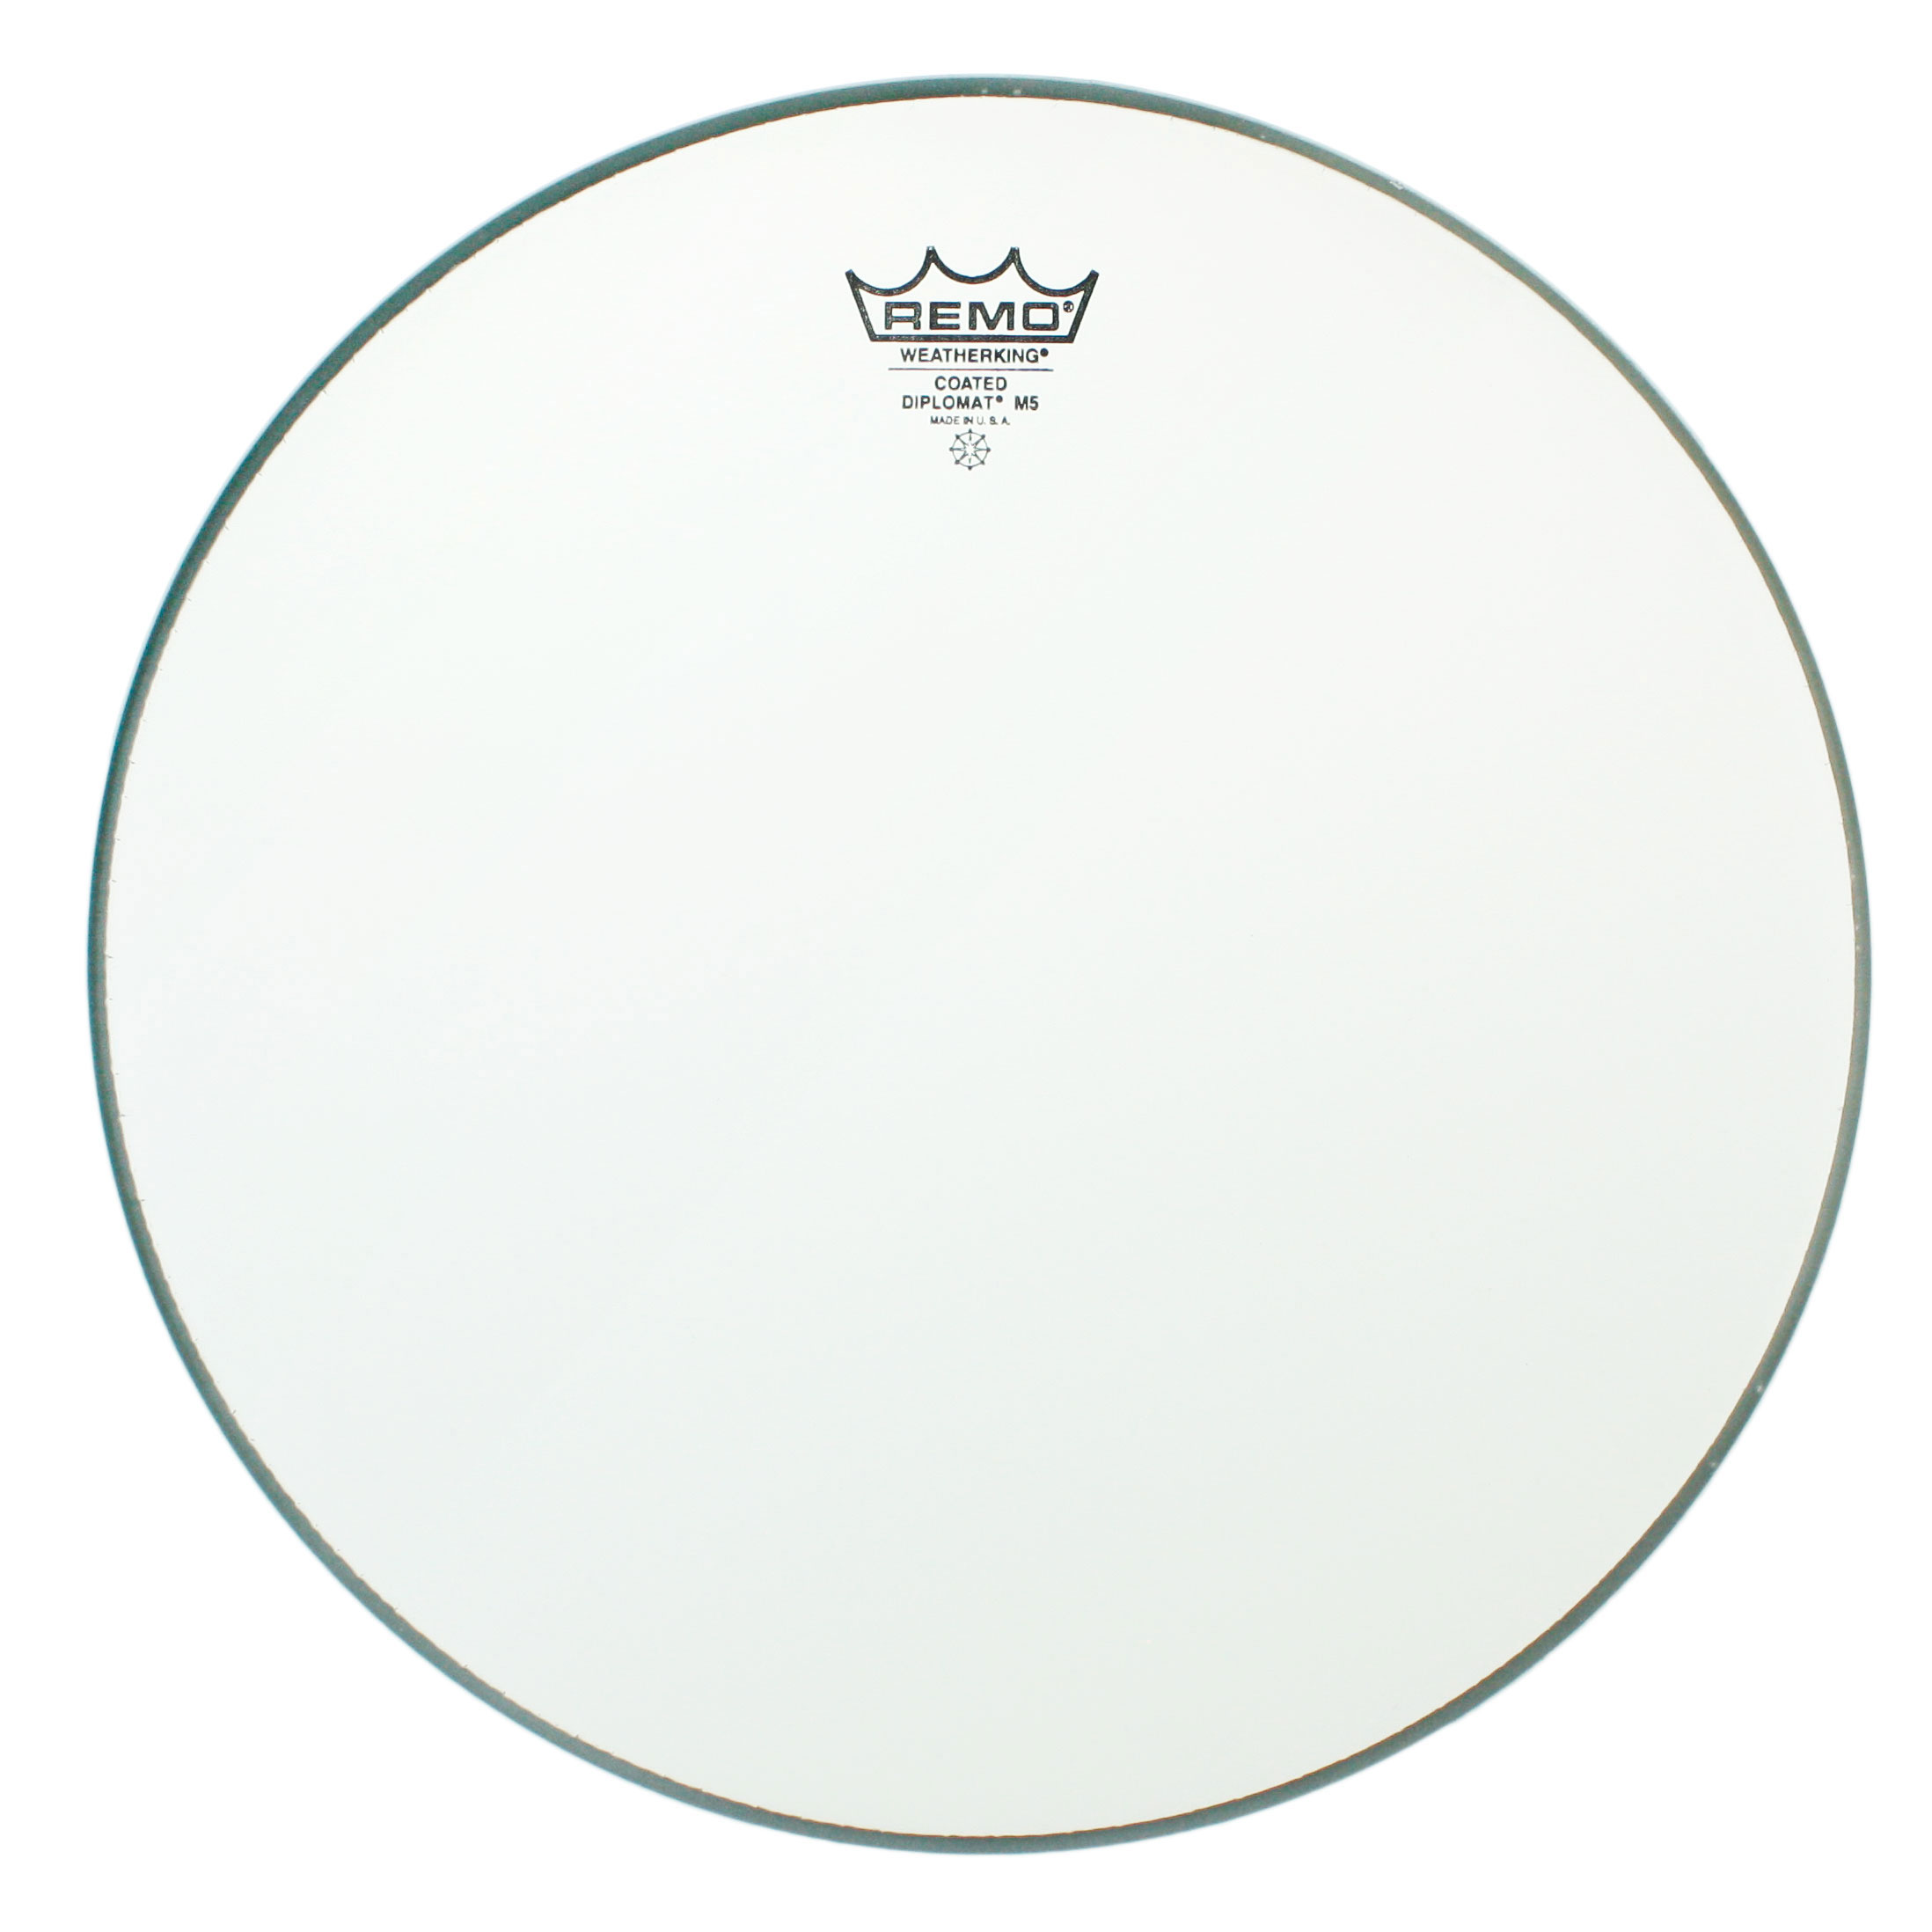 "Remo 12"" Diplomat Coated Drum Head"